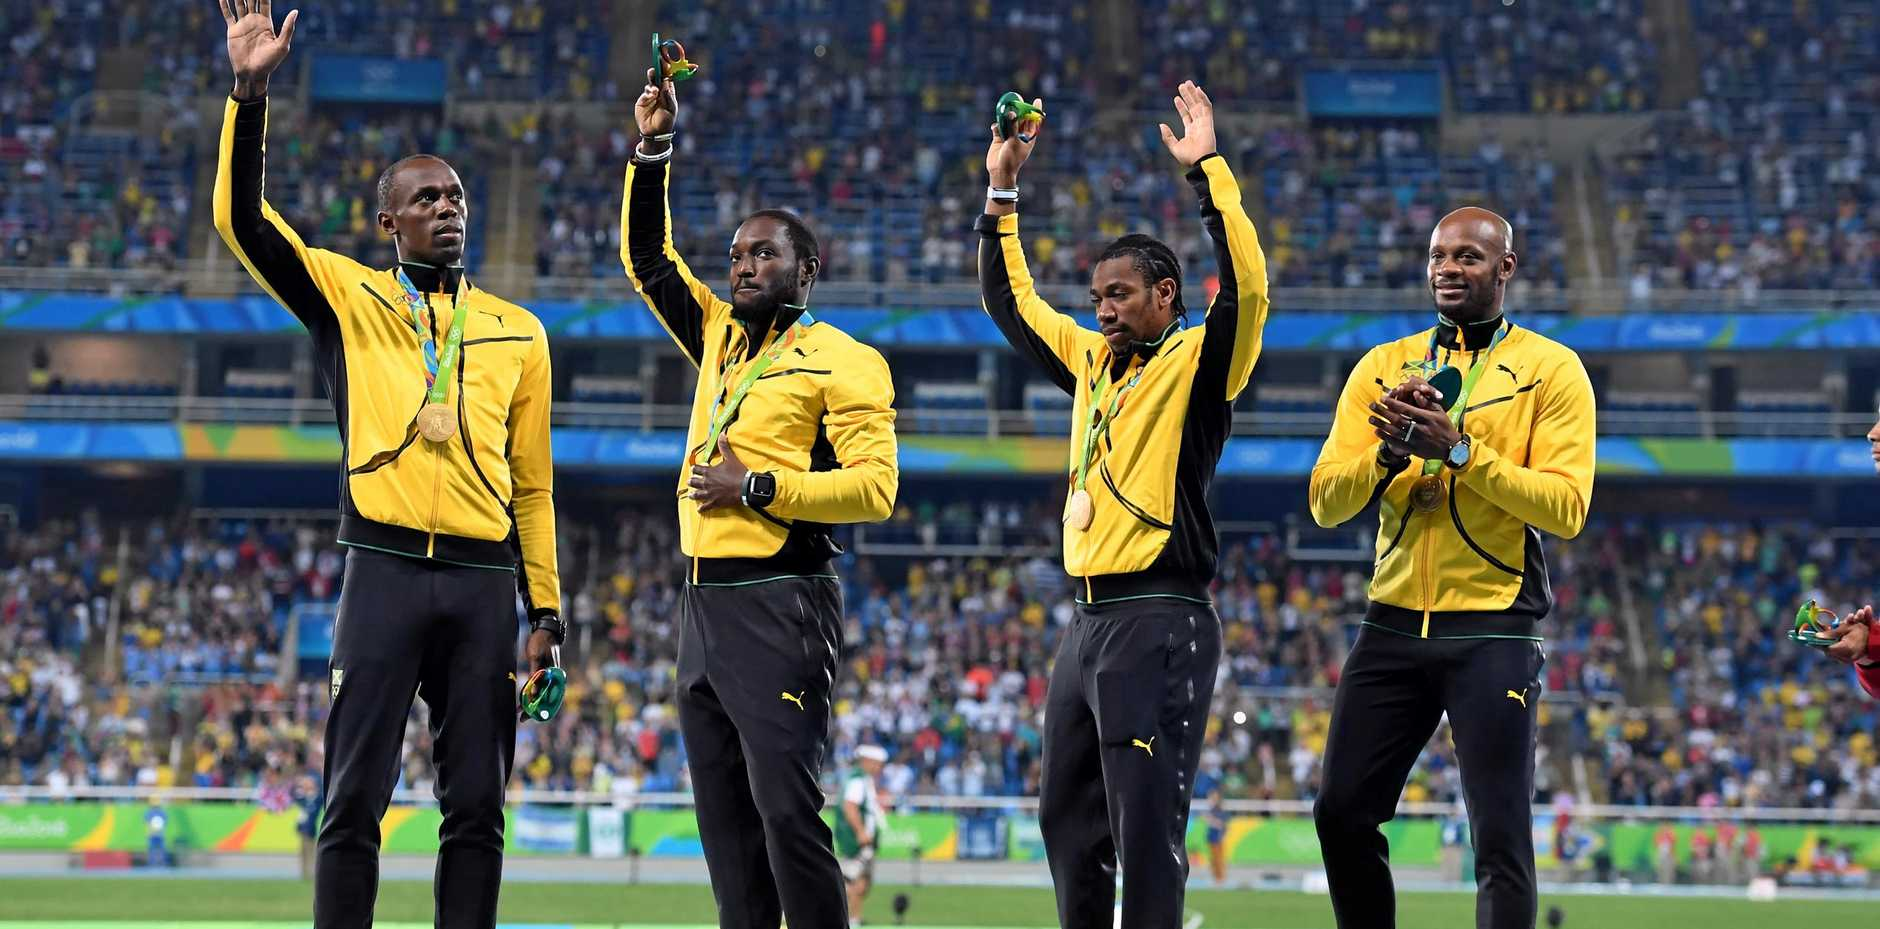 Usain Bolt, Nickel Ashmeade, Yohan Blake and Asafa Powell acknowledge the crowd's applause after receiving their gold medals for winning the 4x100m relay at the Rio Oympics.